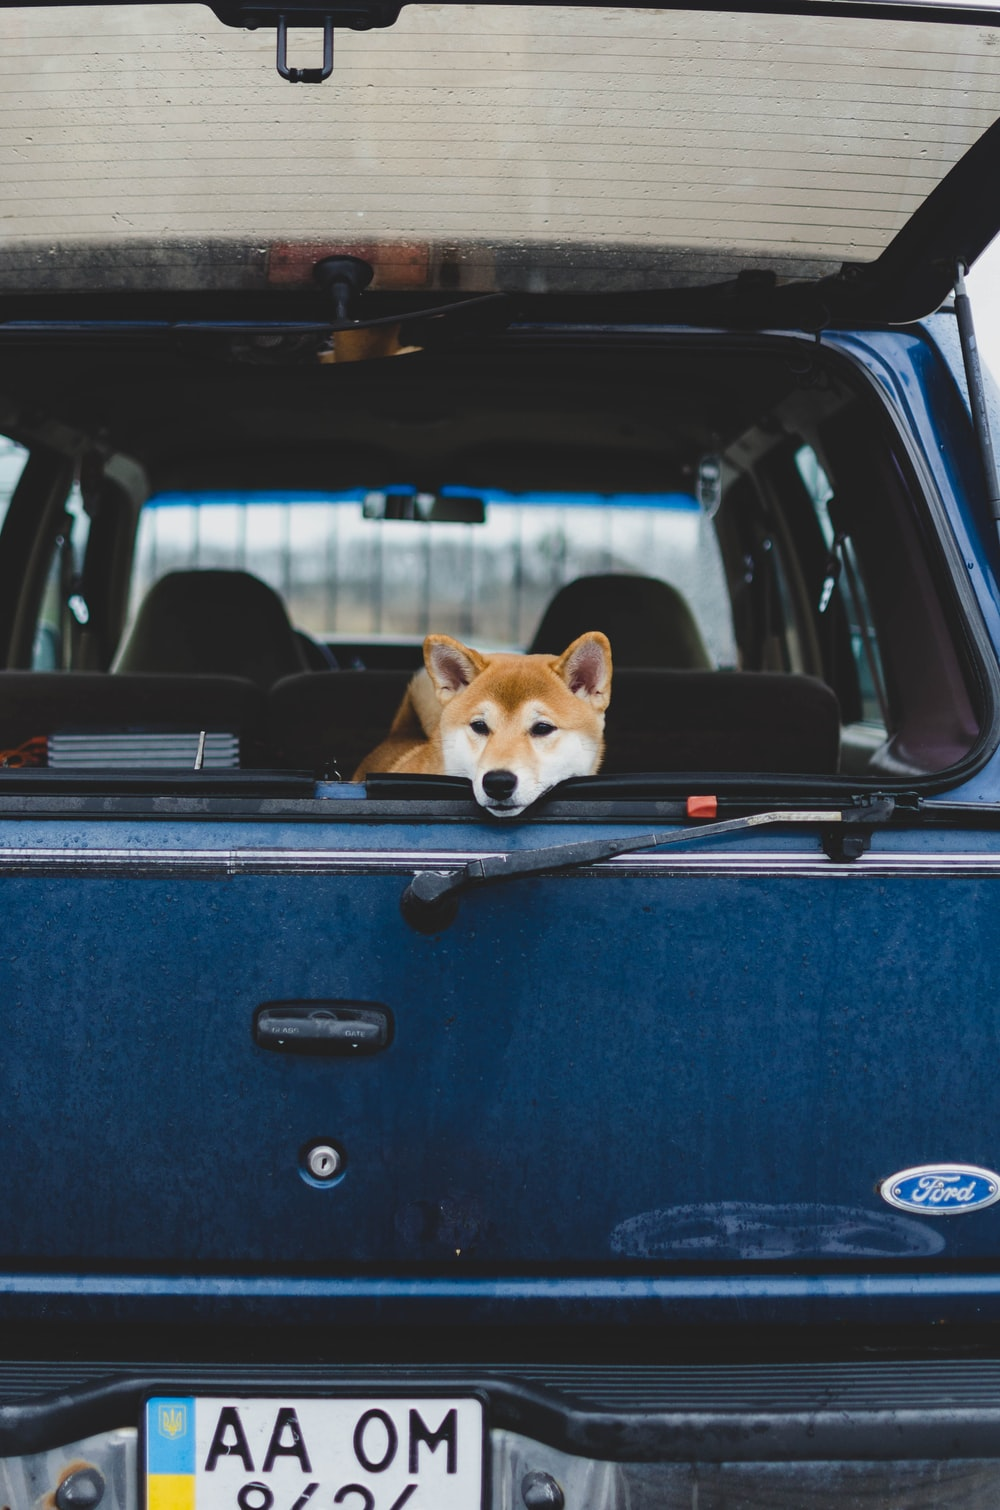 brown and white dog inside blue car